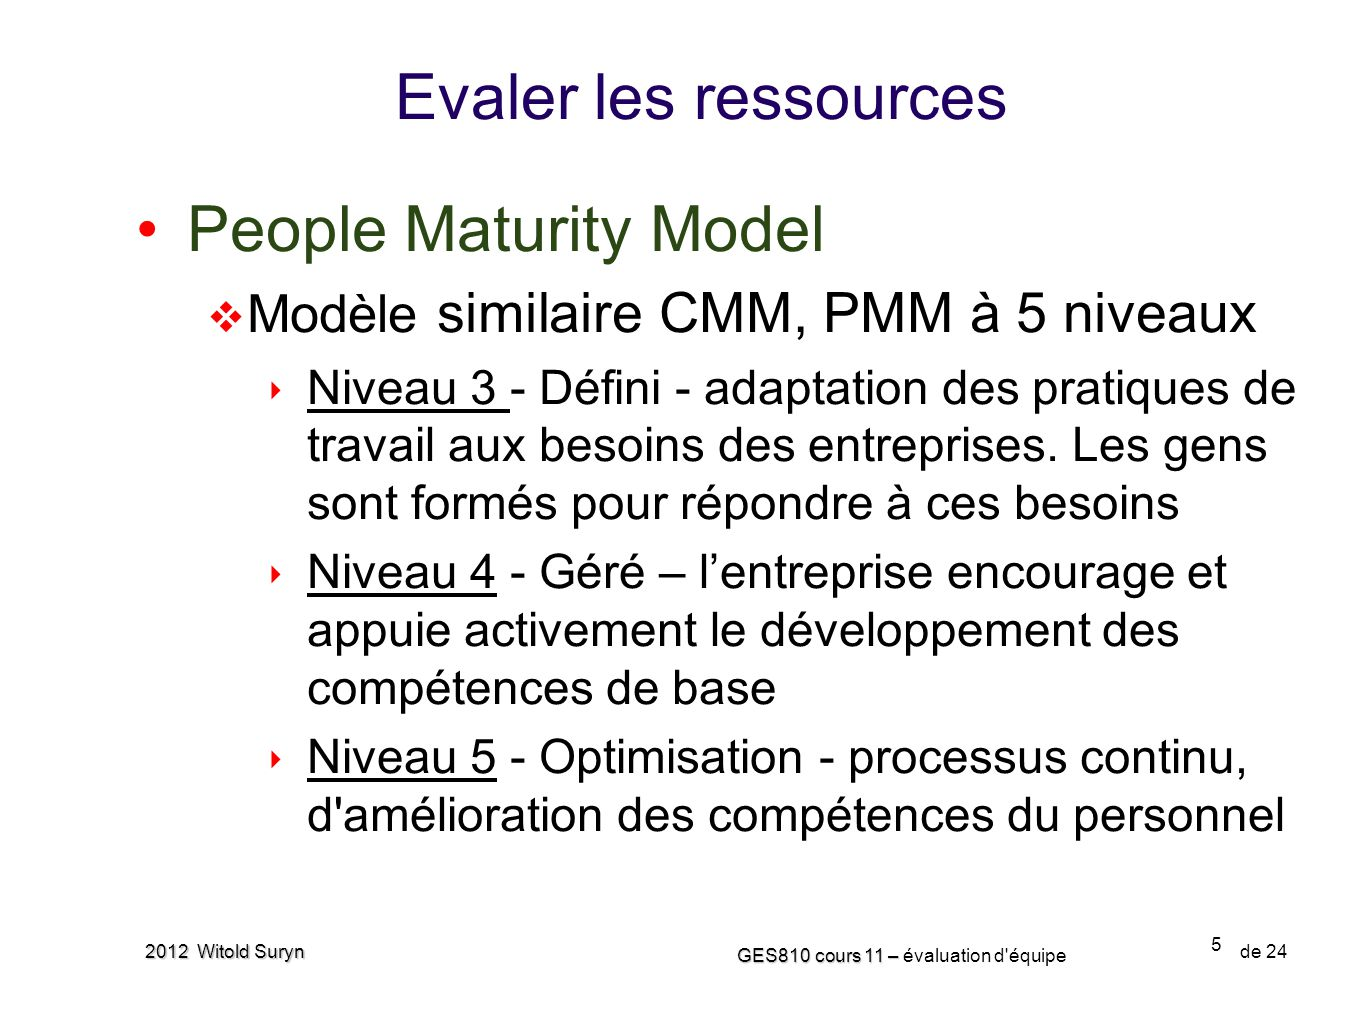 Evaler les ressources People Maturity Model